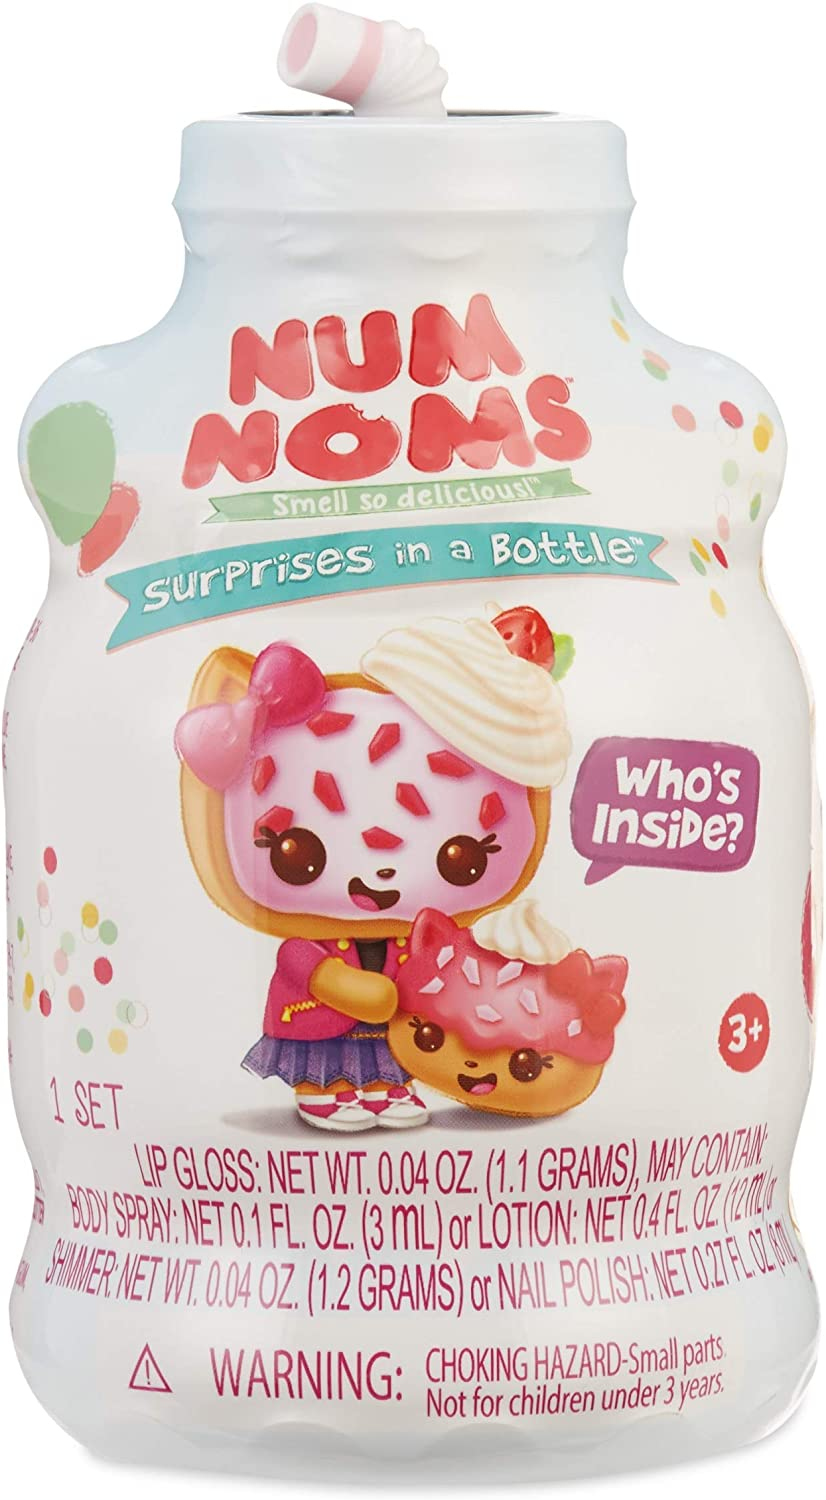 Num Noms Mystery Makeup with Hidden Cosmetics Inside, Multicolor